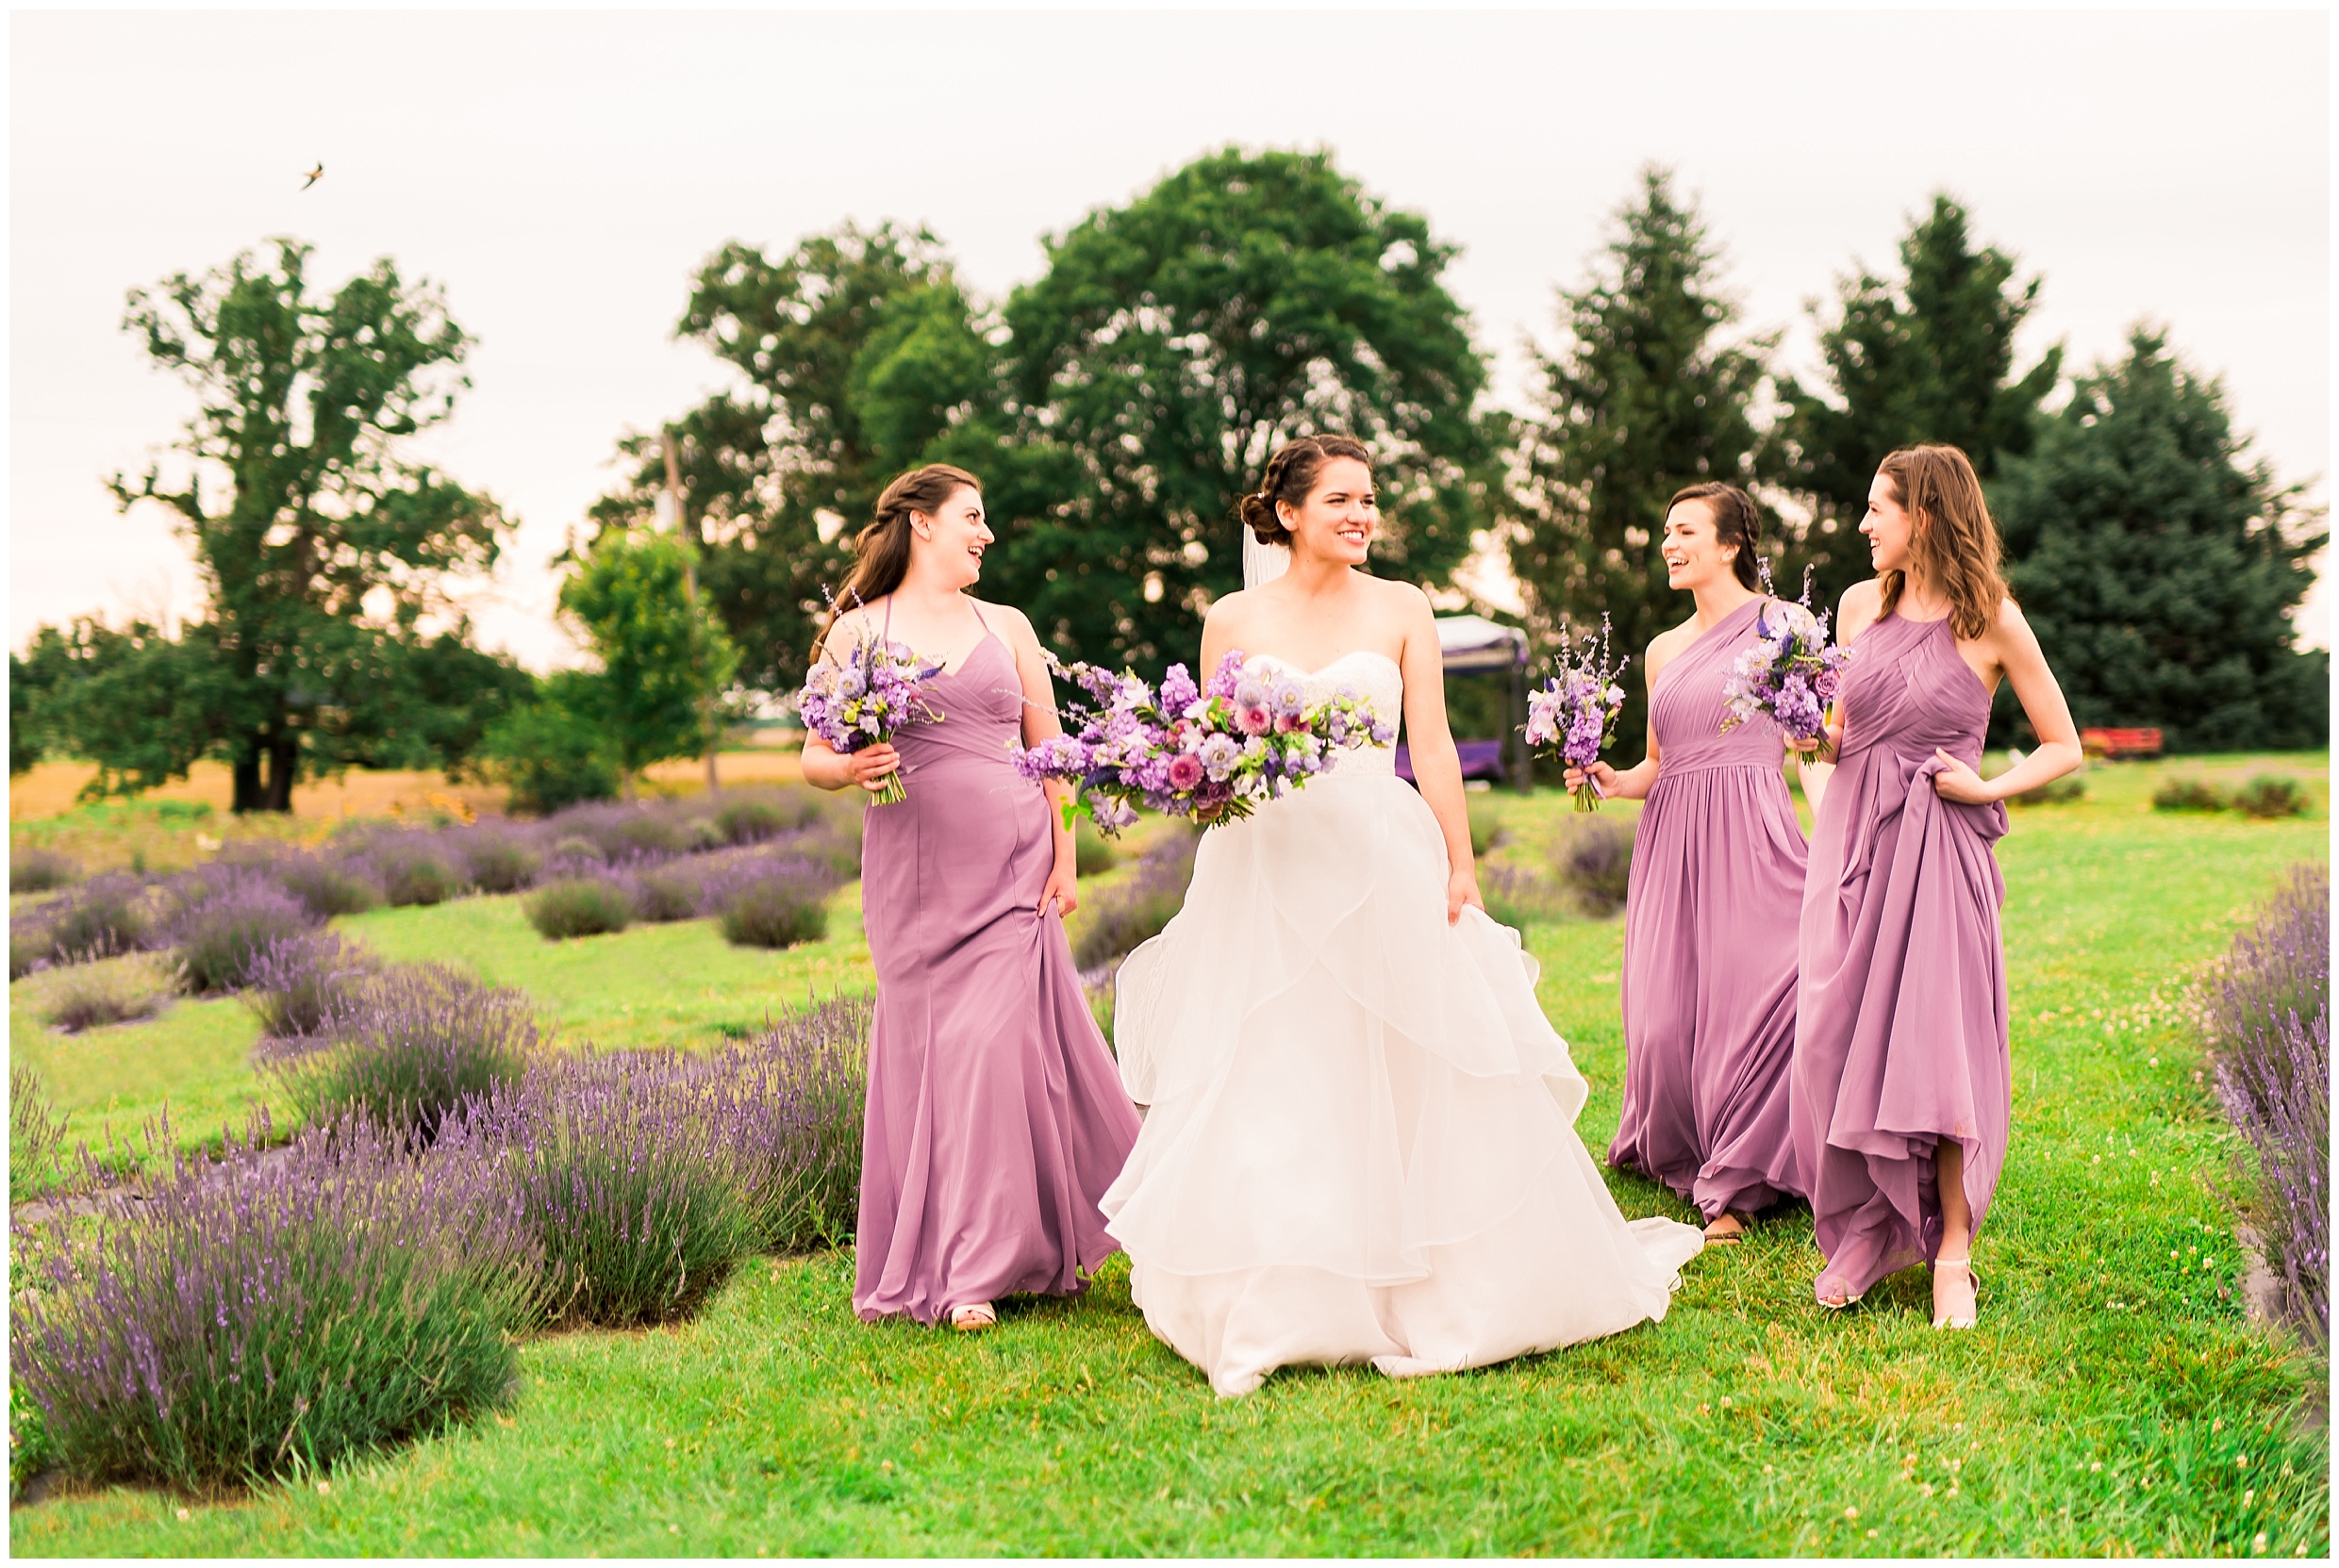 Rose + Brad on June 23, 2018 ♥ Maddy Williams Photography at Seven Oaks Lavender Farm (Catlett, VA)